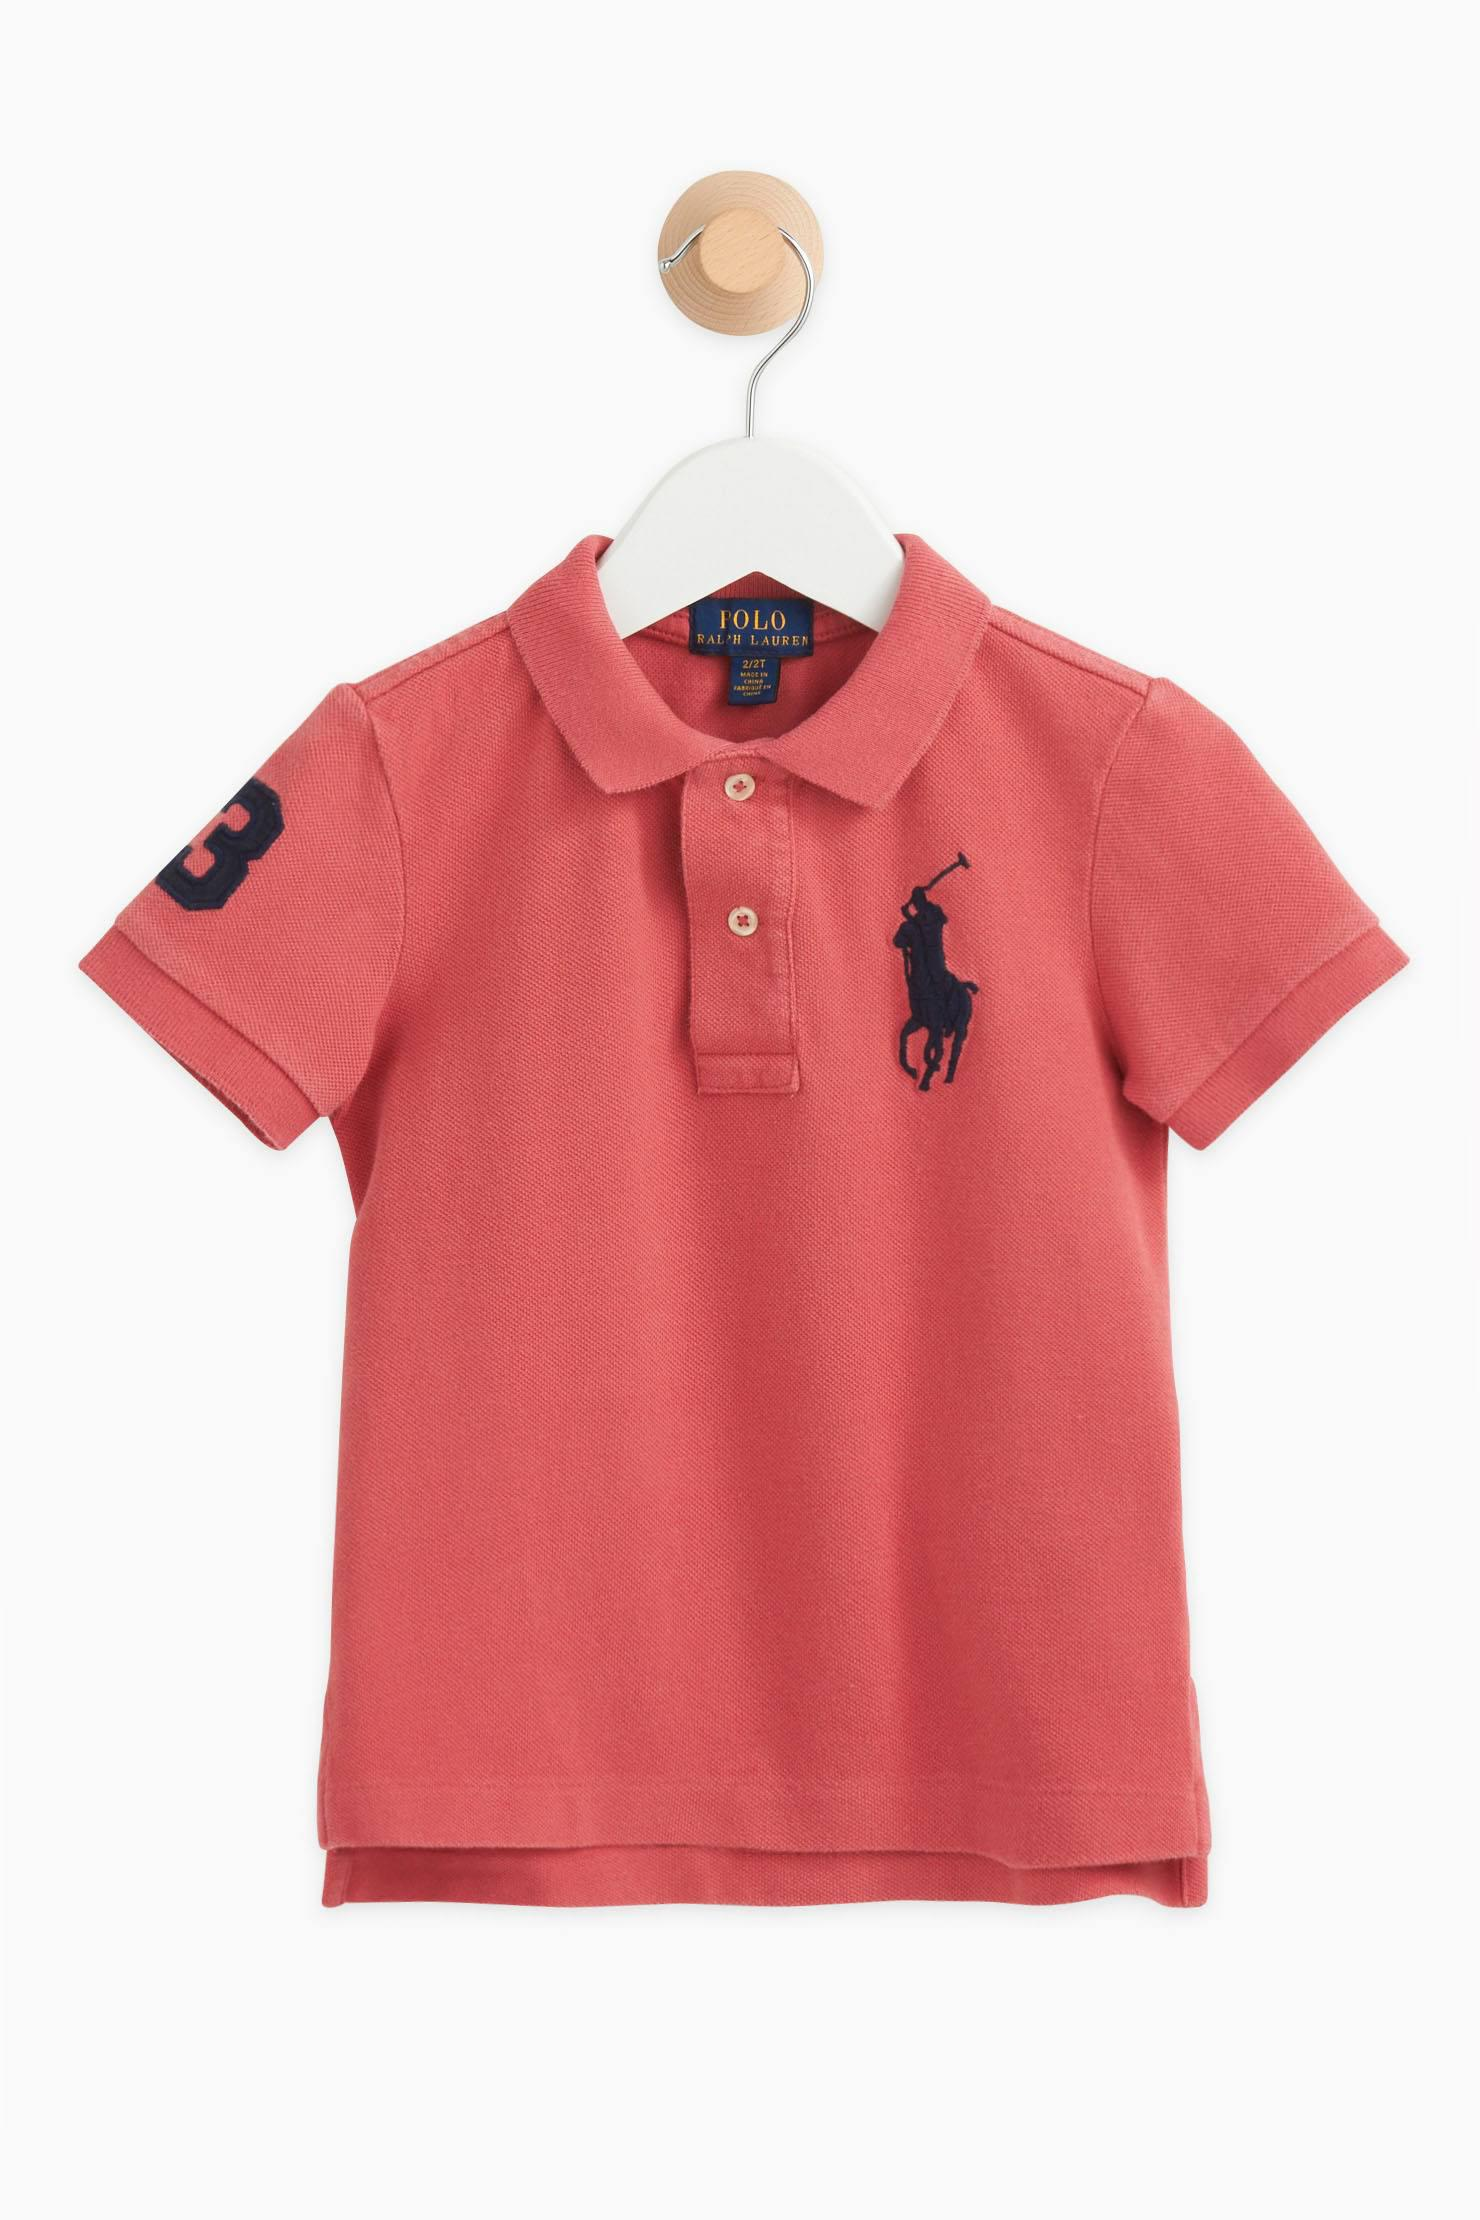 polo ralph lauren t shirt polo shirt in red for men lyst. Black Bedroom Furniture Sets. Home Design Ideas